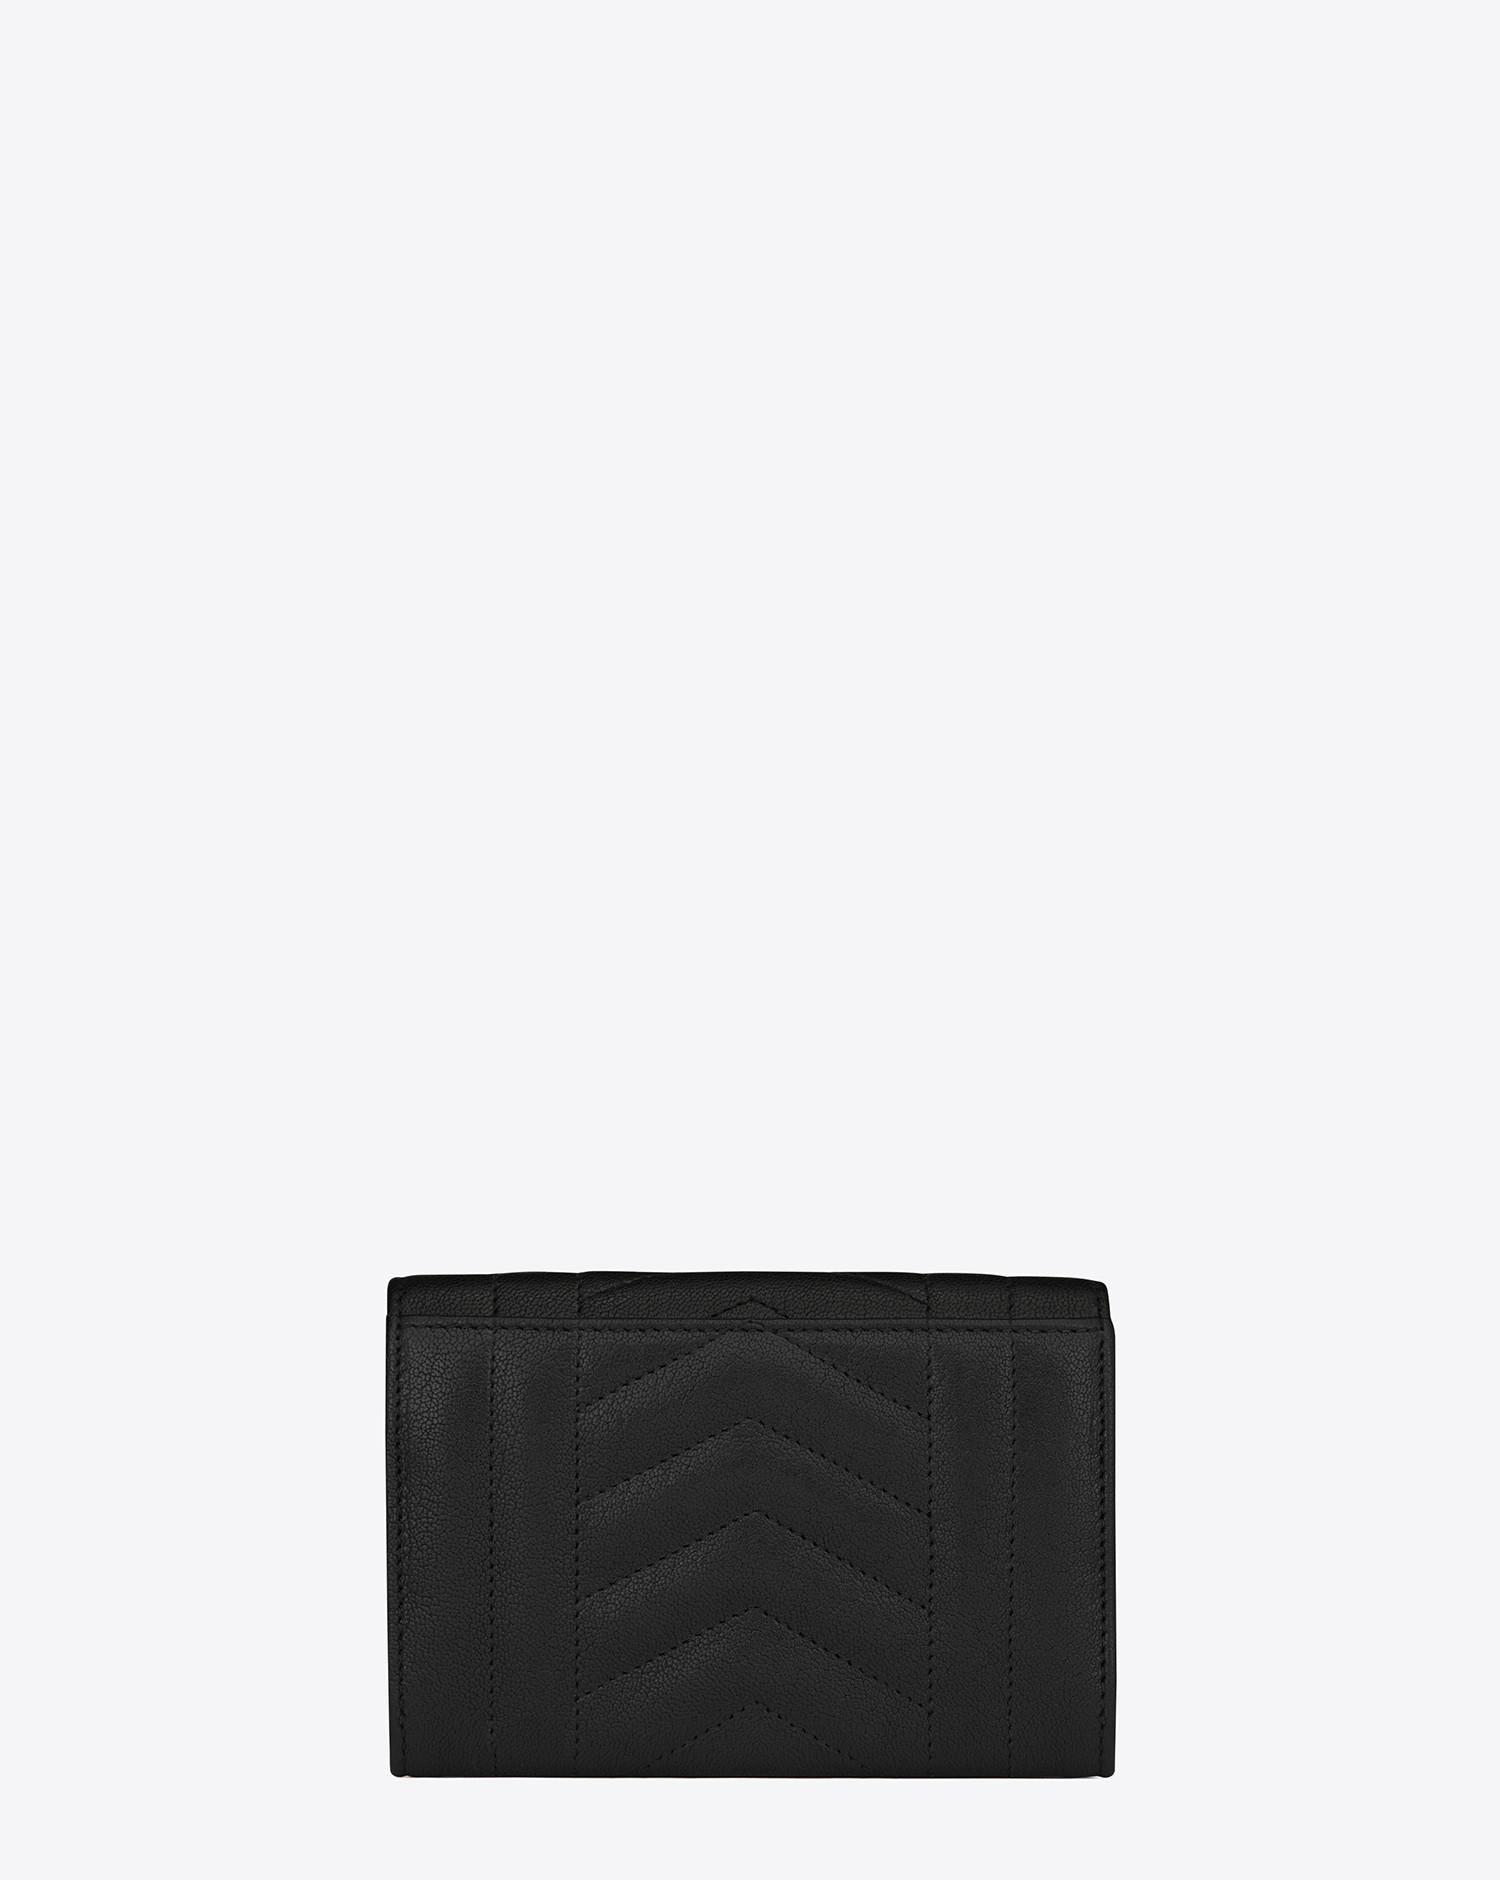 2a1a24f3f28 Saint Laurent Small Monogram Envelope Wallet In Black Mixed ...